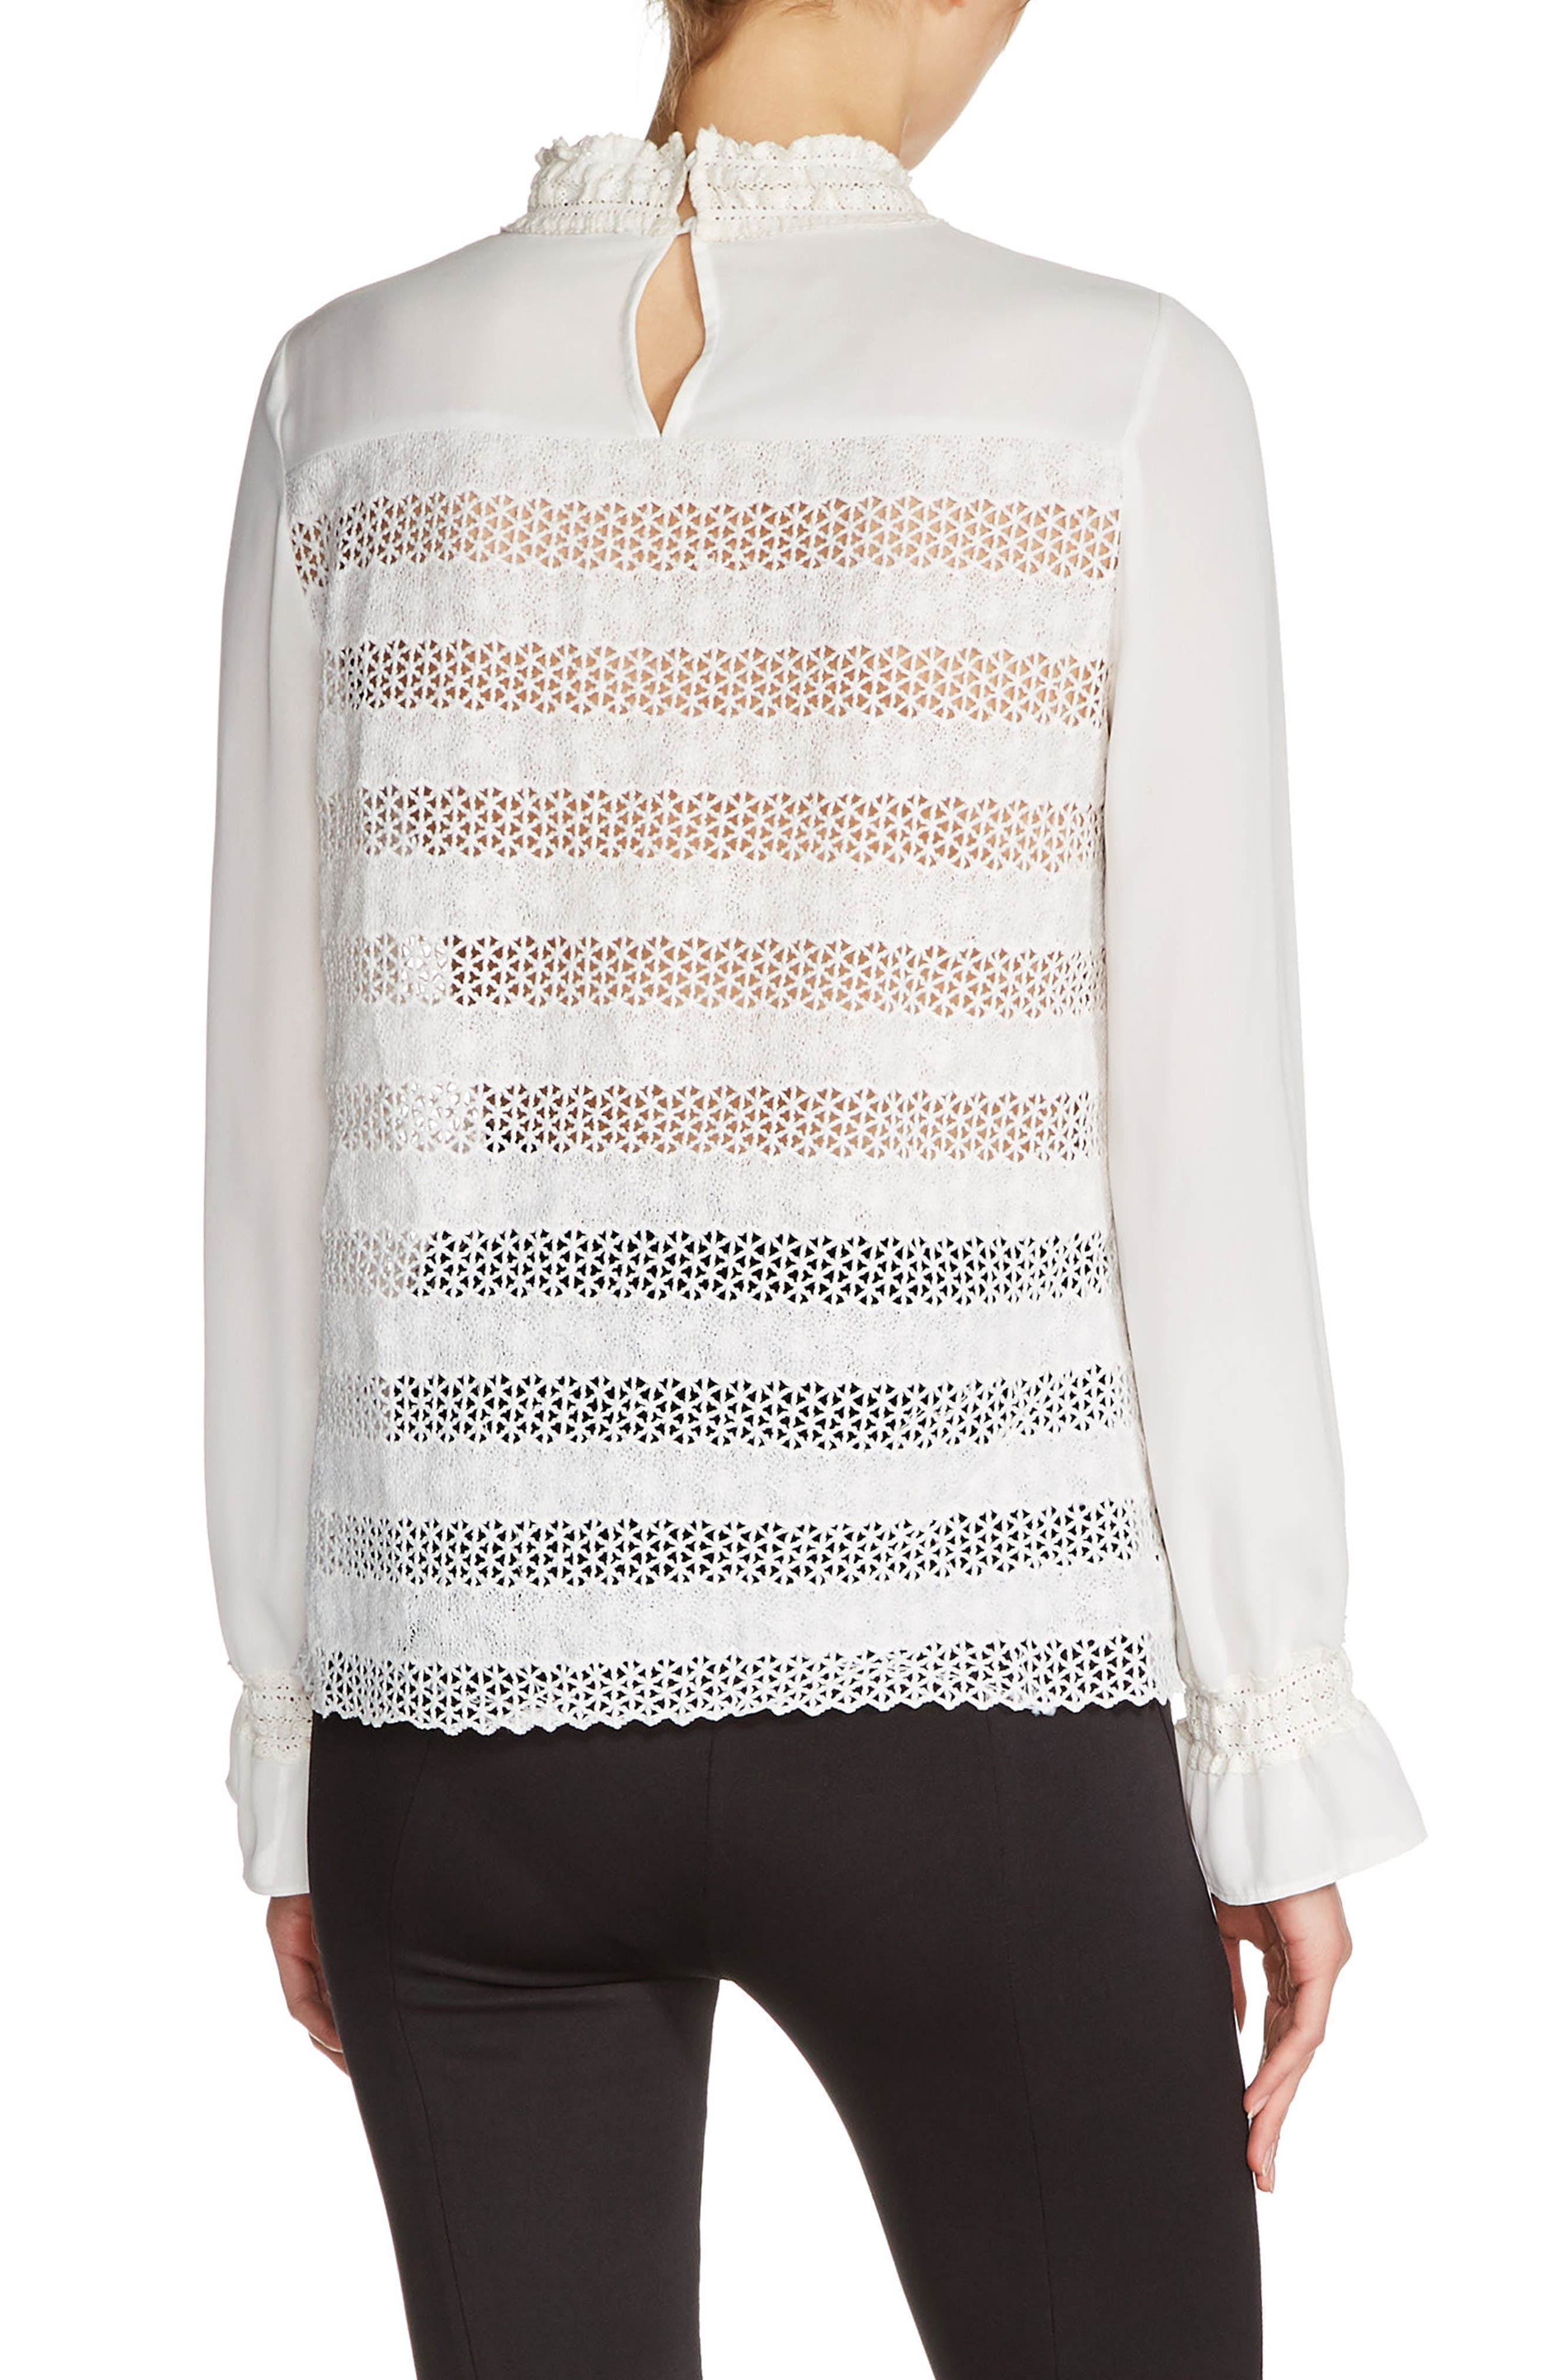 Embroidered Lace Top,                             Alternate thumbnail 2, color,                             Ecru